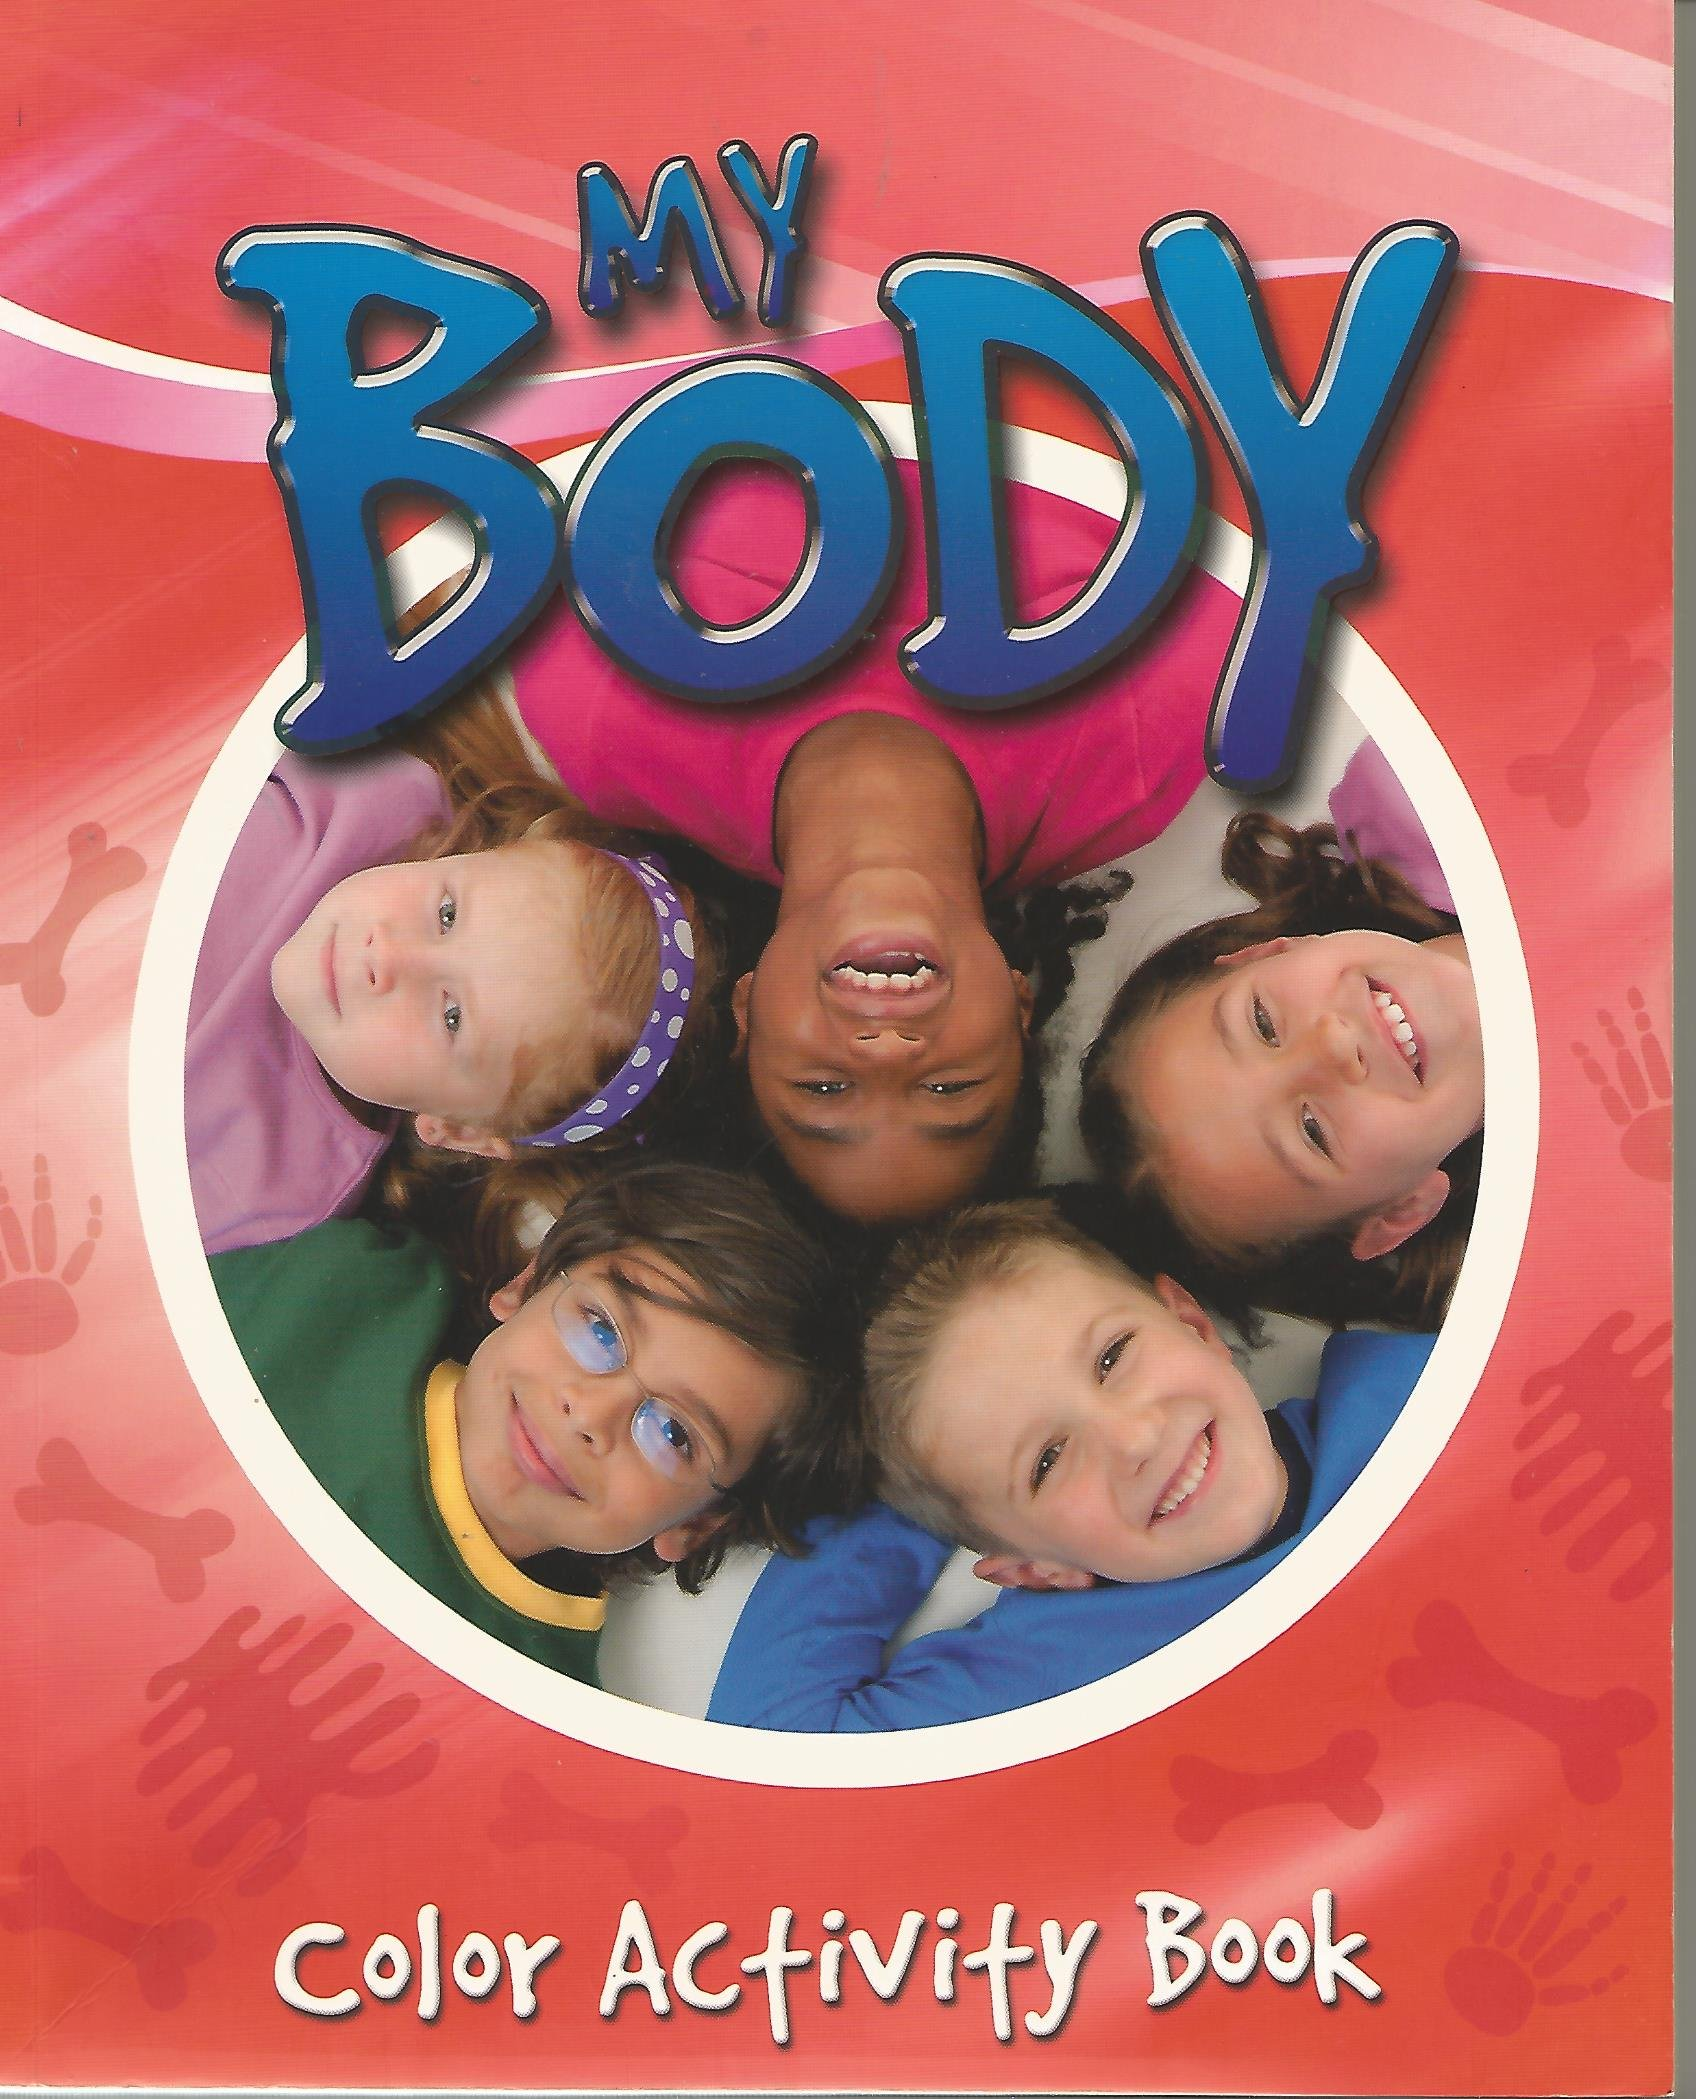 My body color activity book paperback 2010